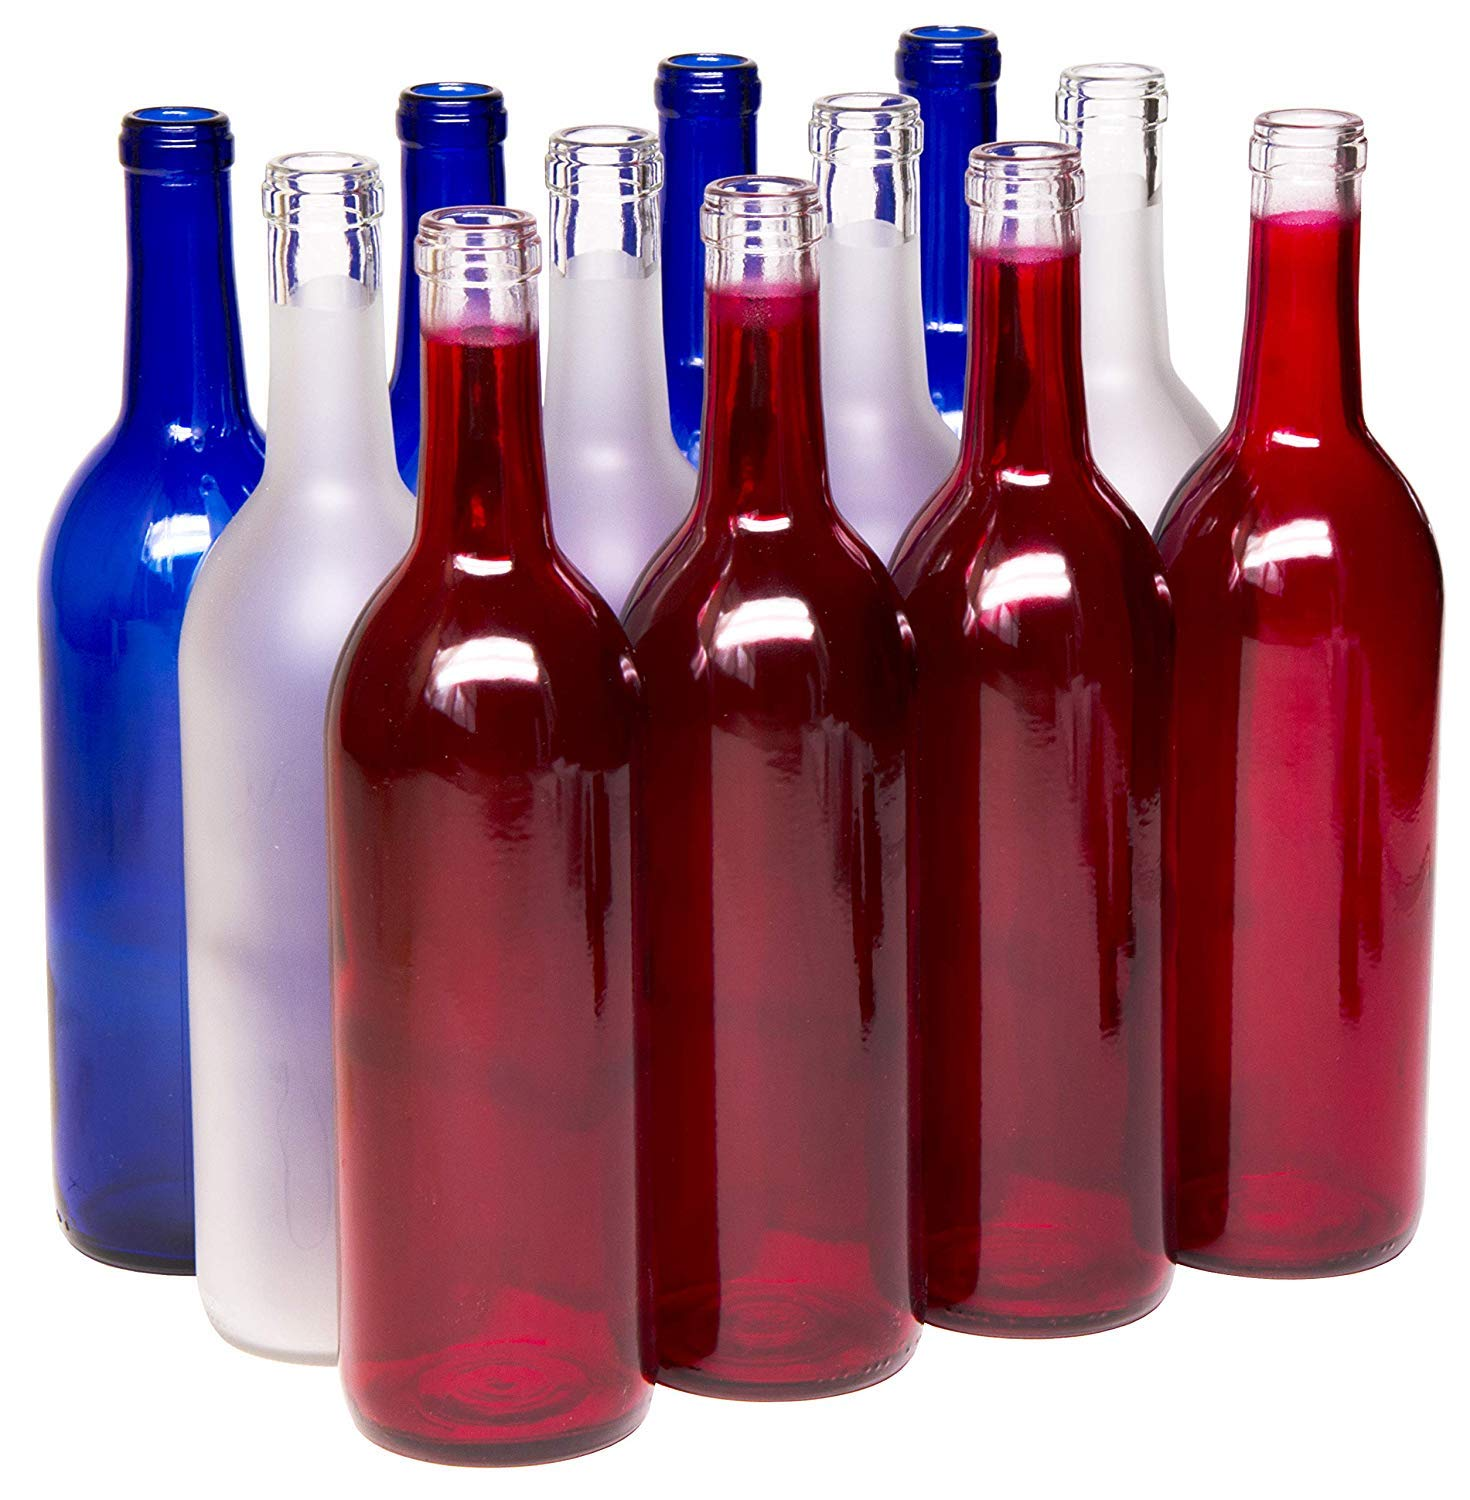 North Mountain Supply 750ml Red White & Blue Assortment Glass Bordeaux Wine Bottle Flat-Bottomed Cork Finish - Case of 12 by North Mountain Supply